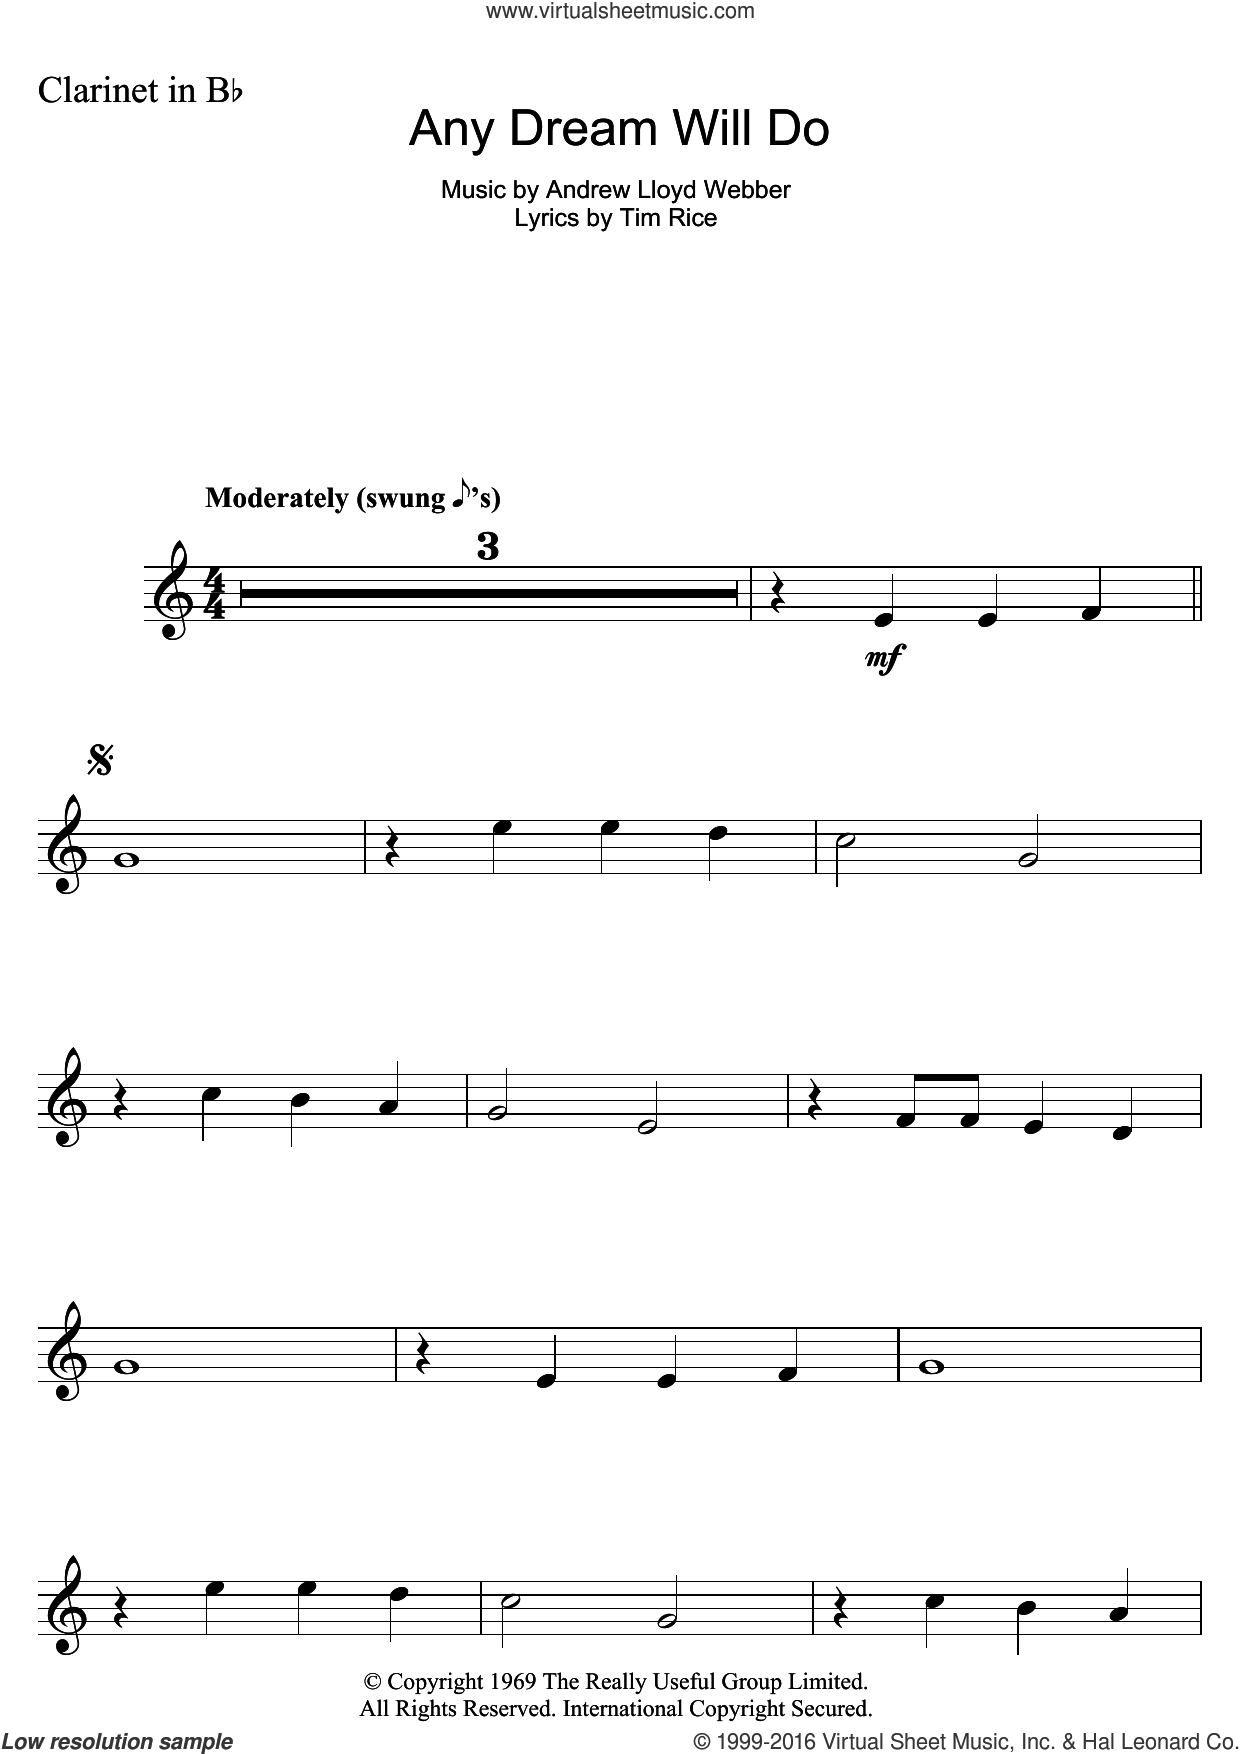 Any Dream Will Do (from Joseph And The Amazing Technicolor Dreamcoat) sheet music for clarinet solo by Andrew Lloyd Webber and Tim Rice, intermediate skill level